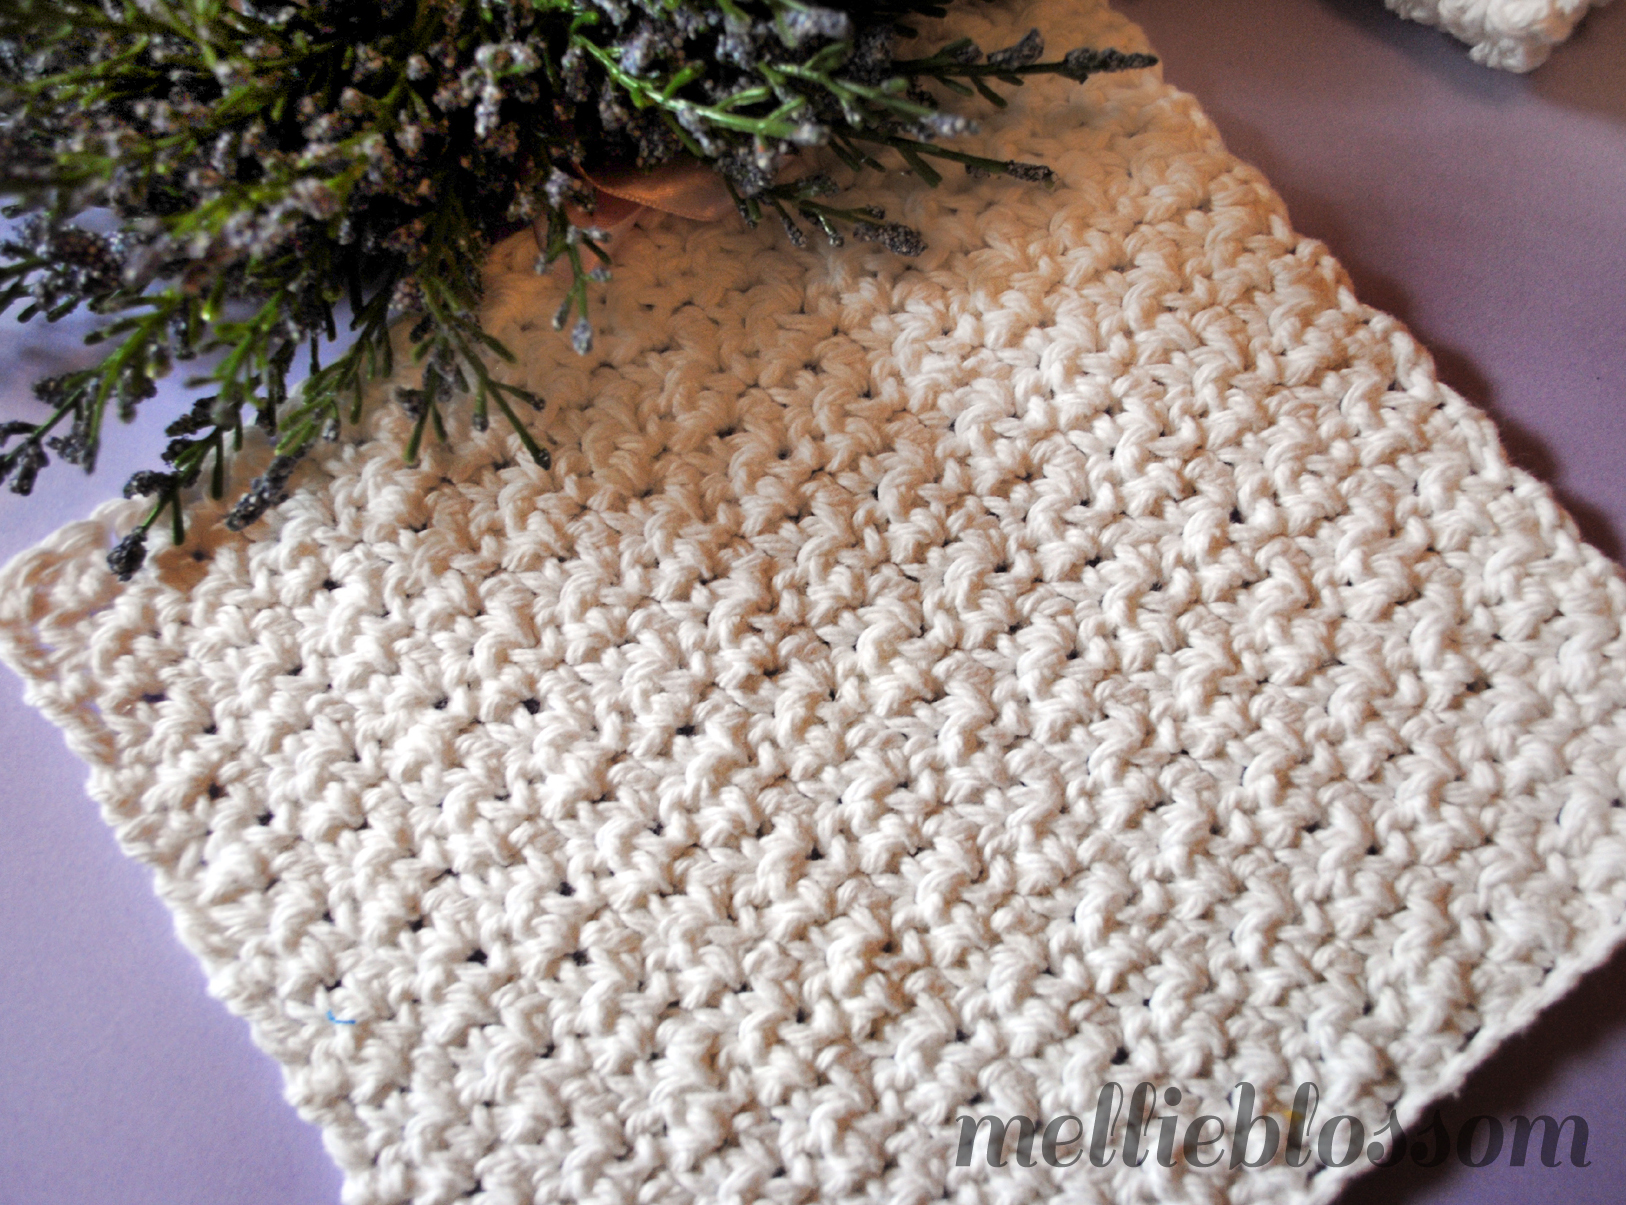 Free Crochet Pattern For Easy Dishcloth : Free Easy Crochet Dishcloth Pattern - mellie blossom